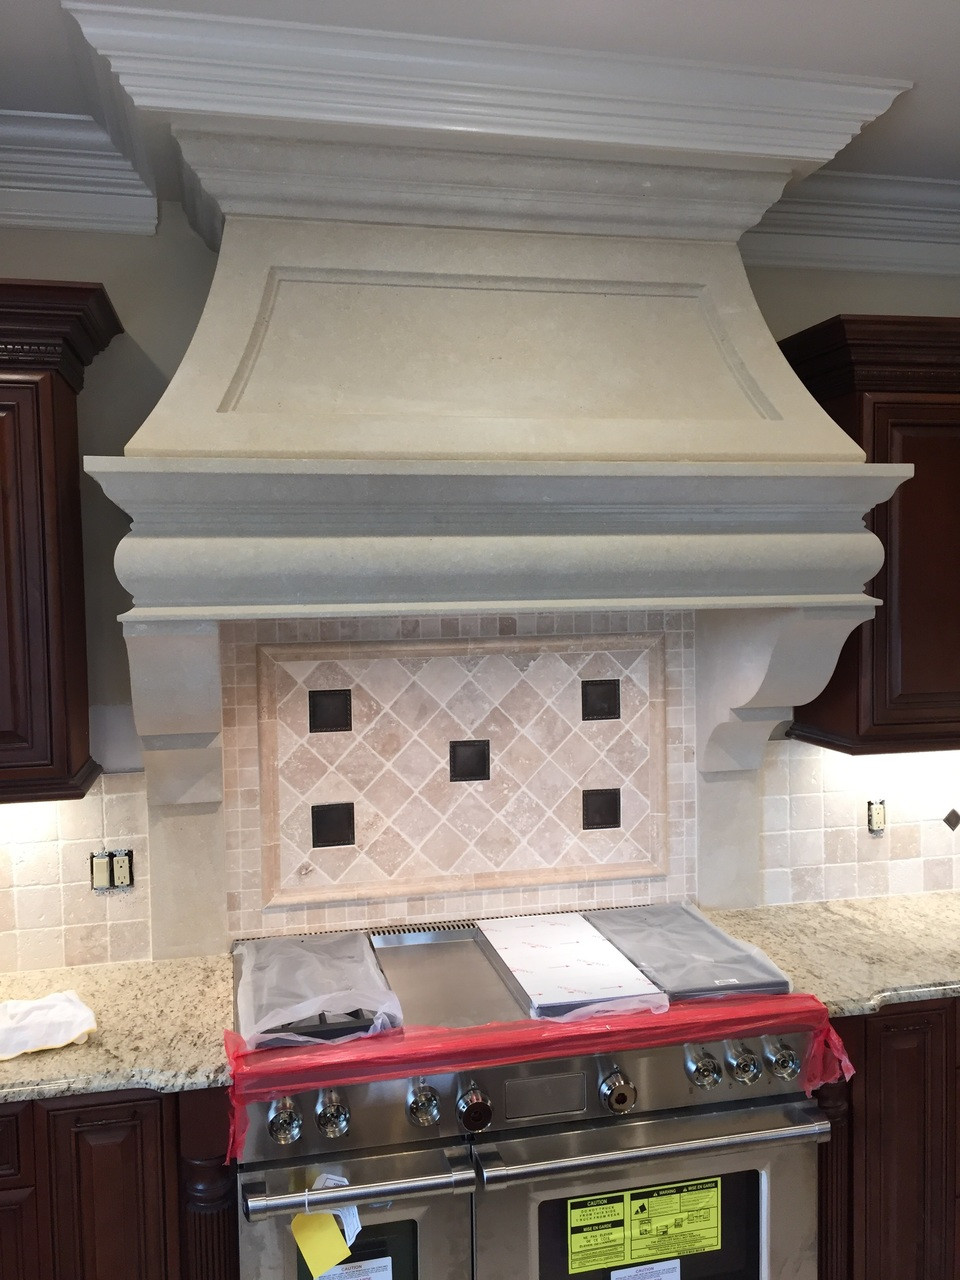 The Williamsburg 48 Inch Range Hood - carved from natural Silverdale limestone